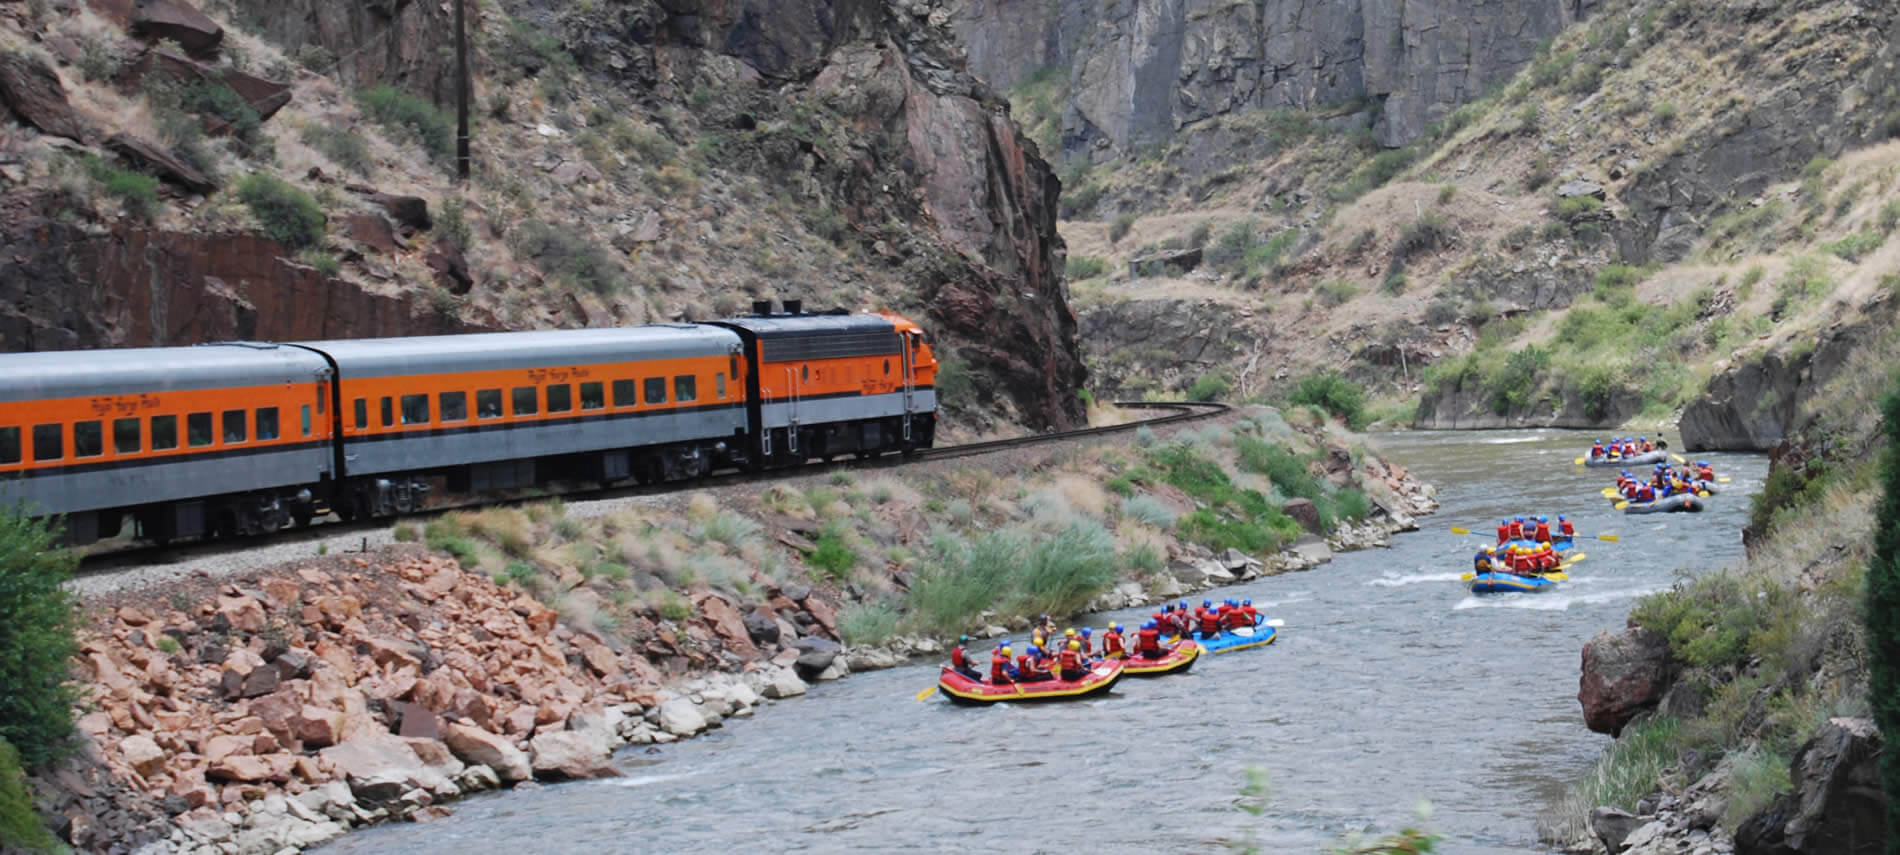 White water rafts floating down a river surrounded by steep rocky mountains and an orange train going by